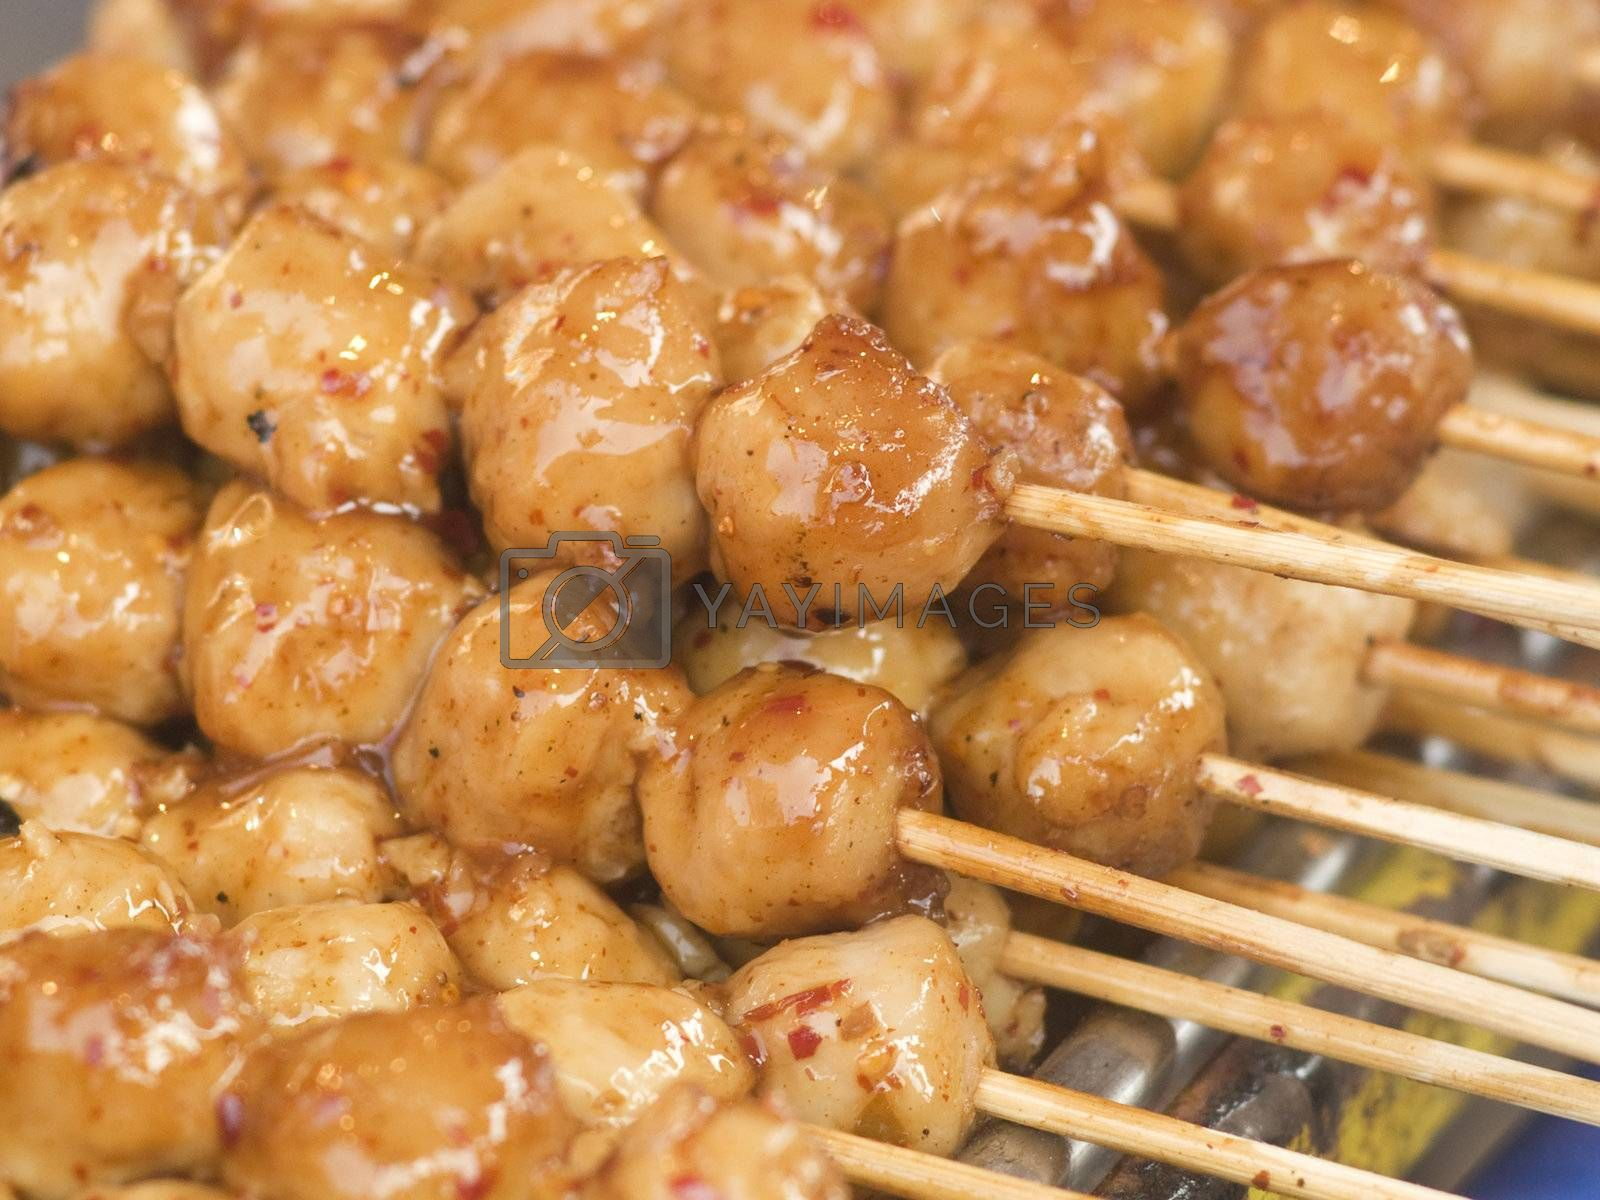 Meatballs with chili sauce by epixx